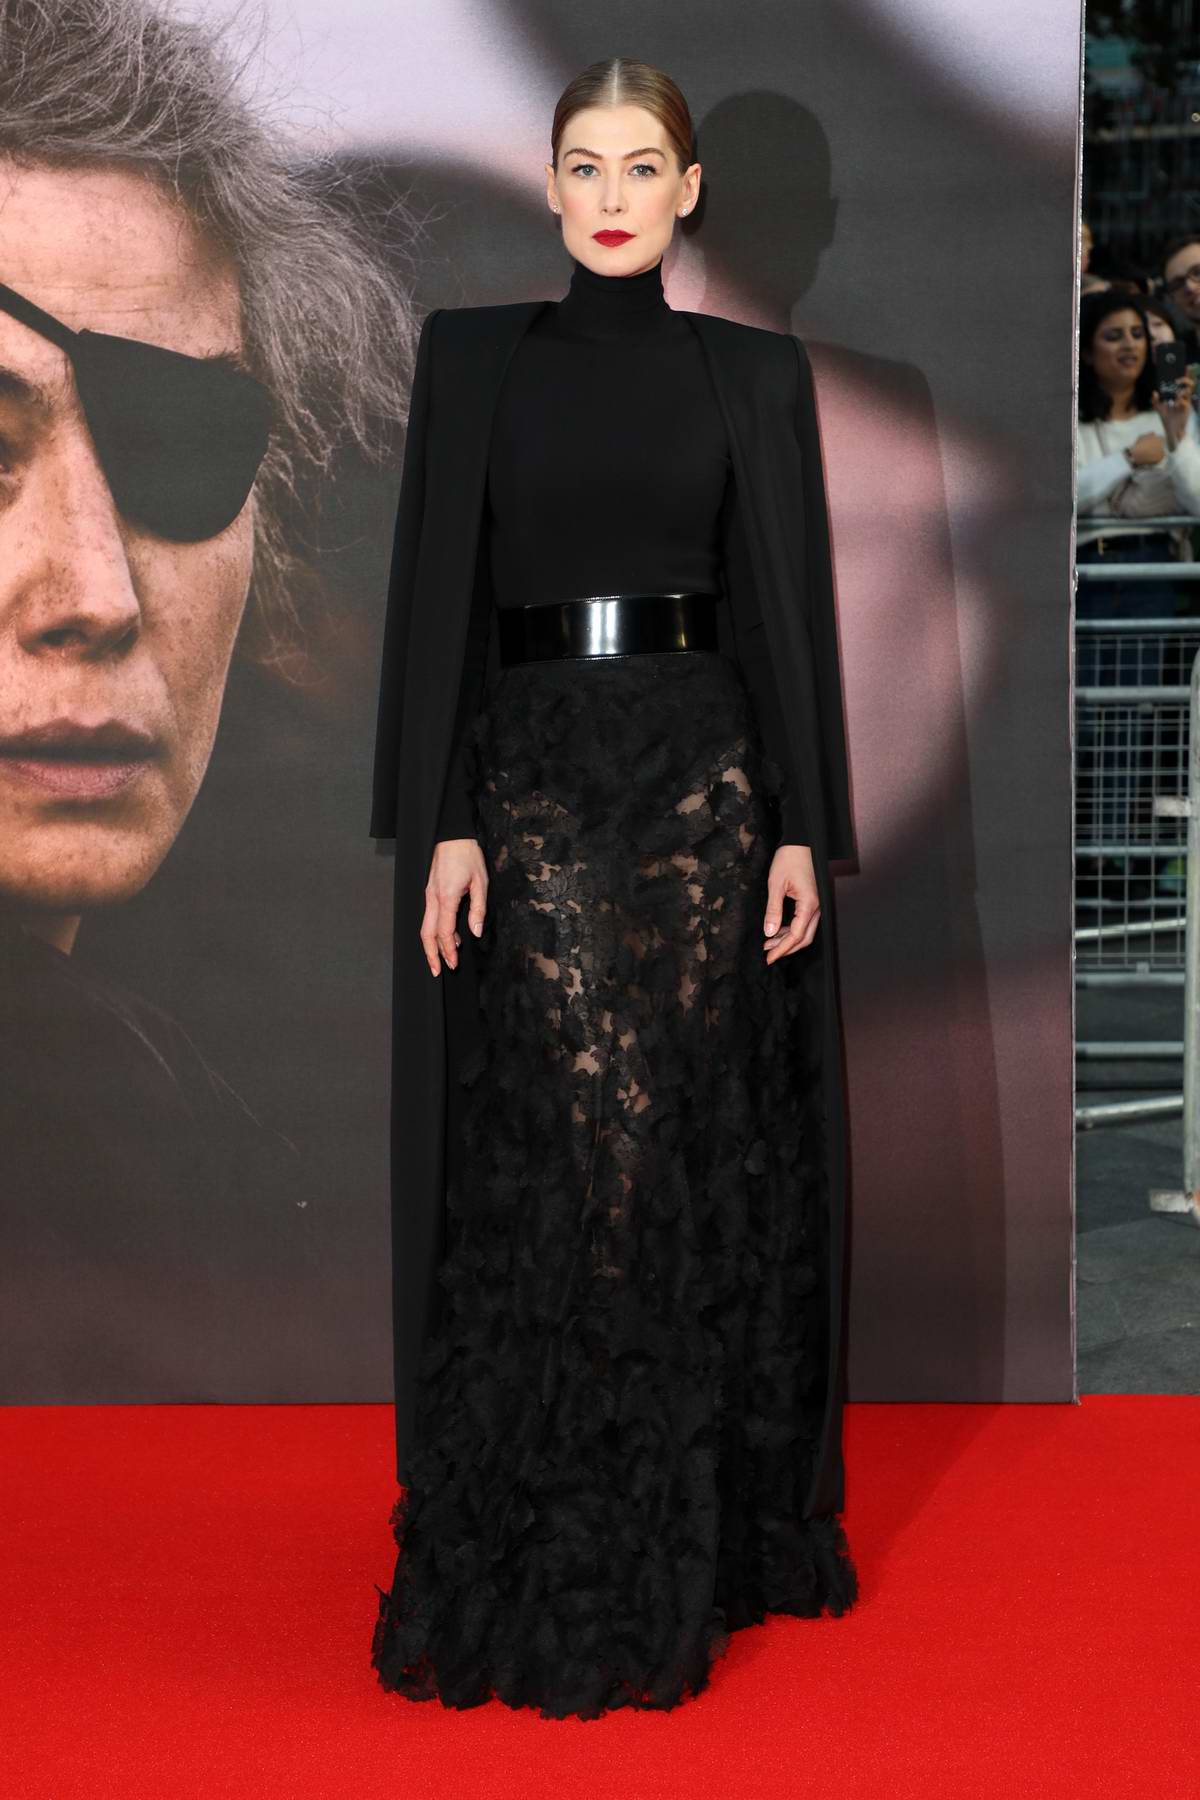 Rosamund Pike attends the European Premiere of 'A Private War' during 62nd BFI London Film Festival 2018 in London, UK